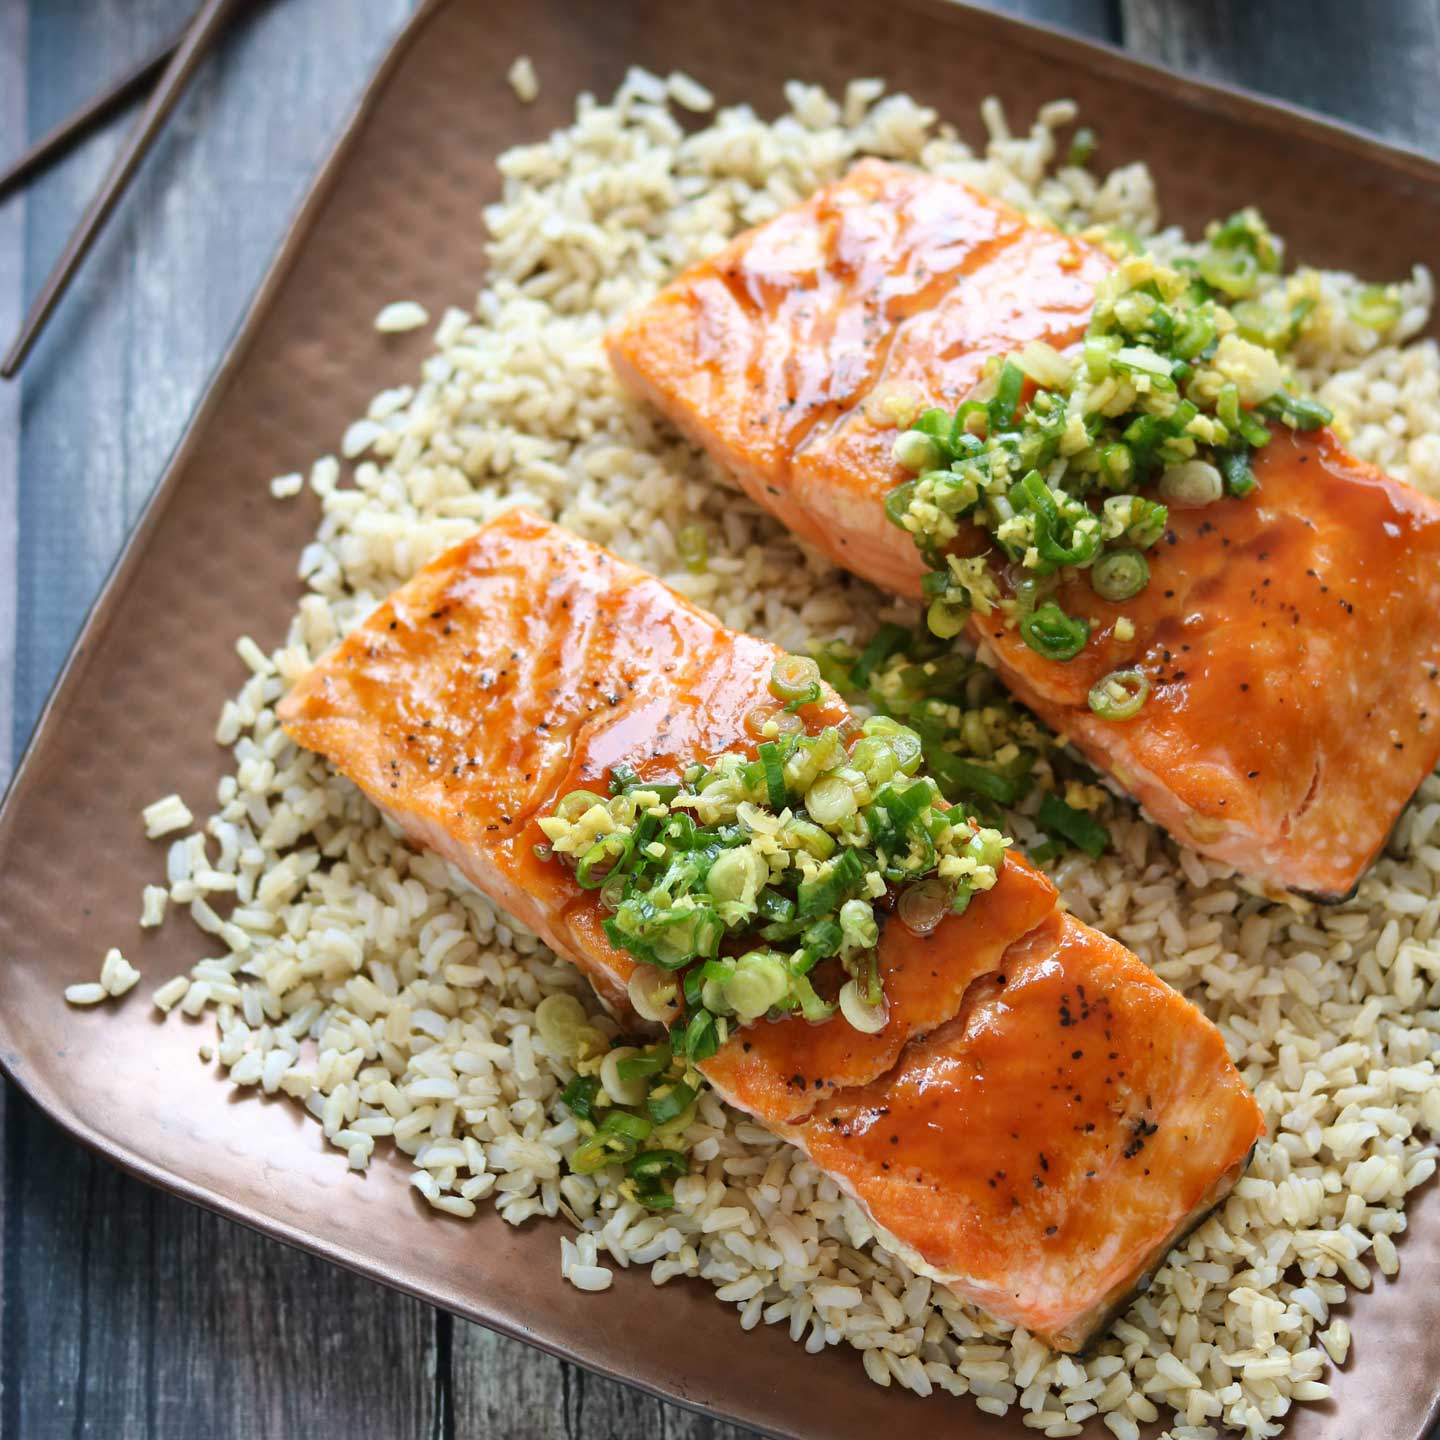 Simple yet impressive … the Red Miso Salmon recipe is a slam dunk every time!